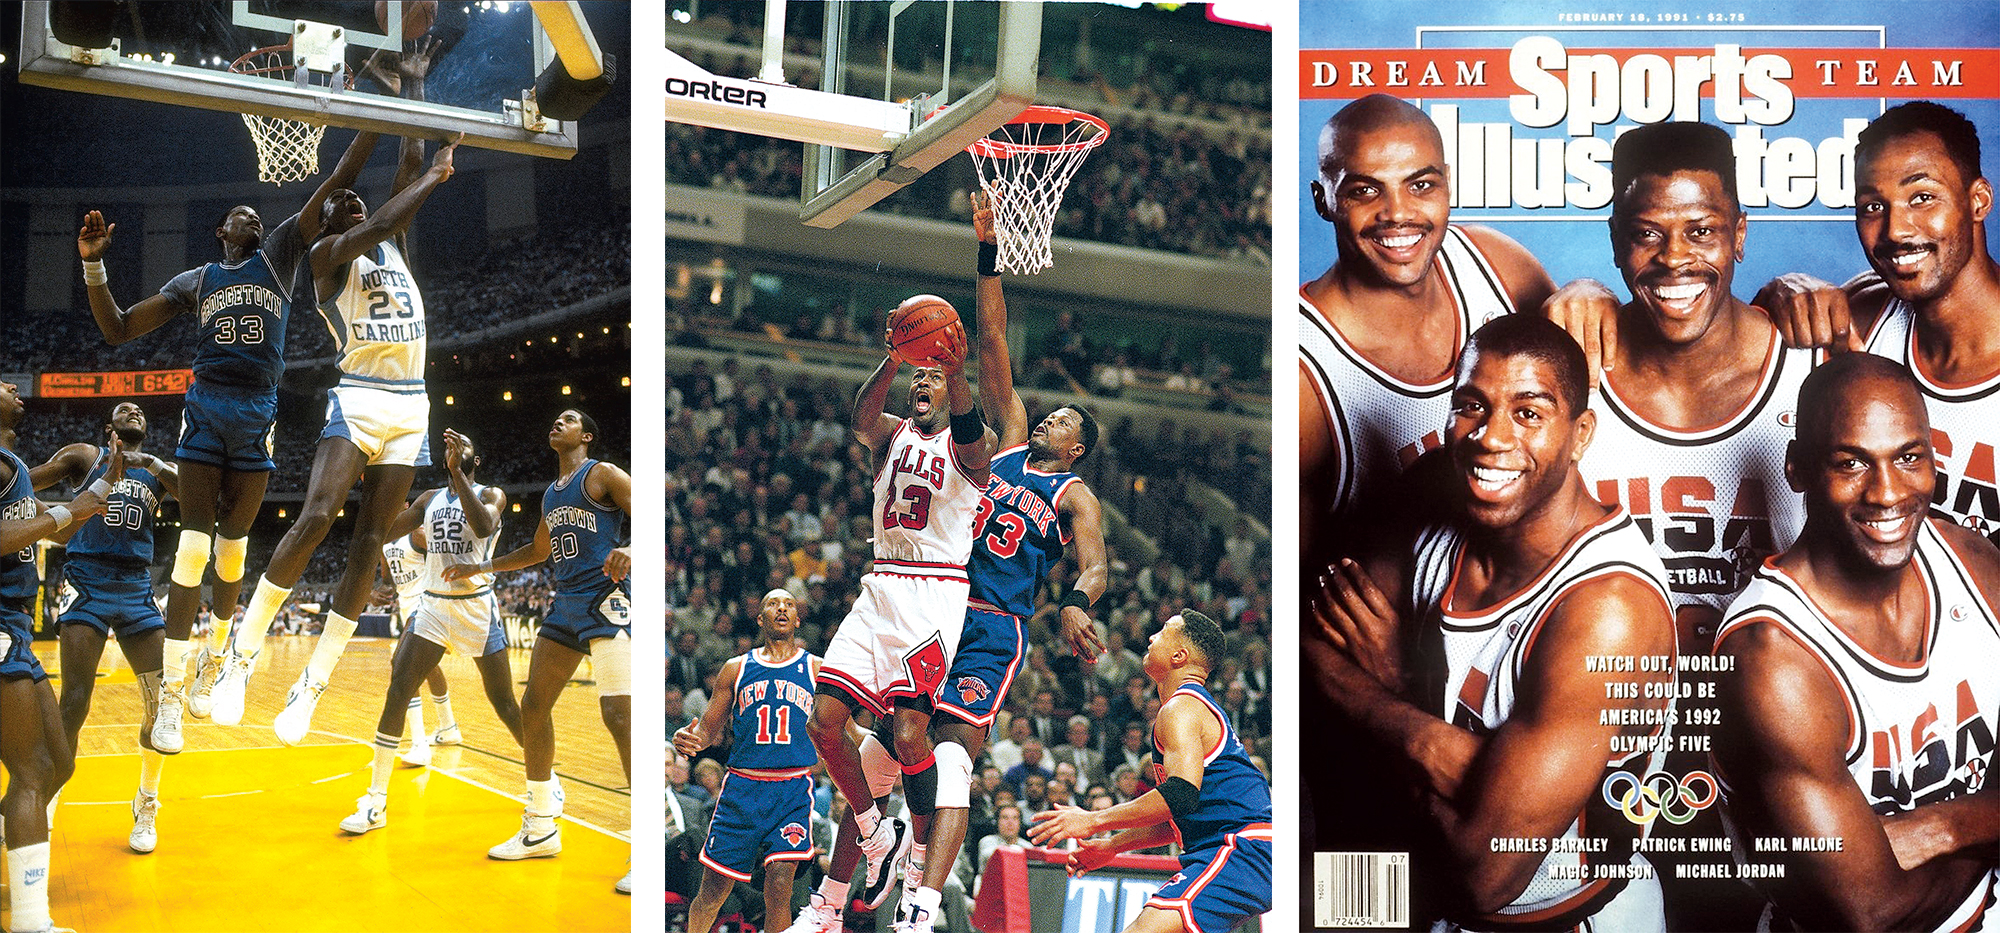 Ewing and Michael Jordan were college foes, rivals in the NBA, and starters on 1992's Dream Team. Images from left: Photograph by Heinz Kluetmeier/Sports Illustrated/Getty Images; Photograph by Jonathan Daniel/Getty Images; Photograph by Theo Westenberger/